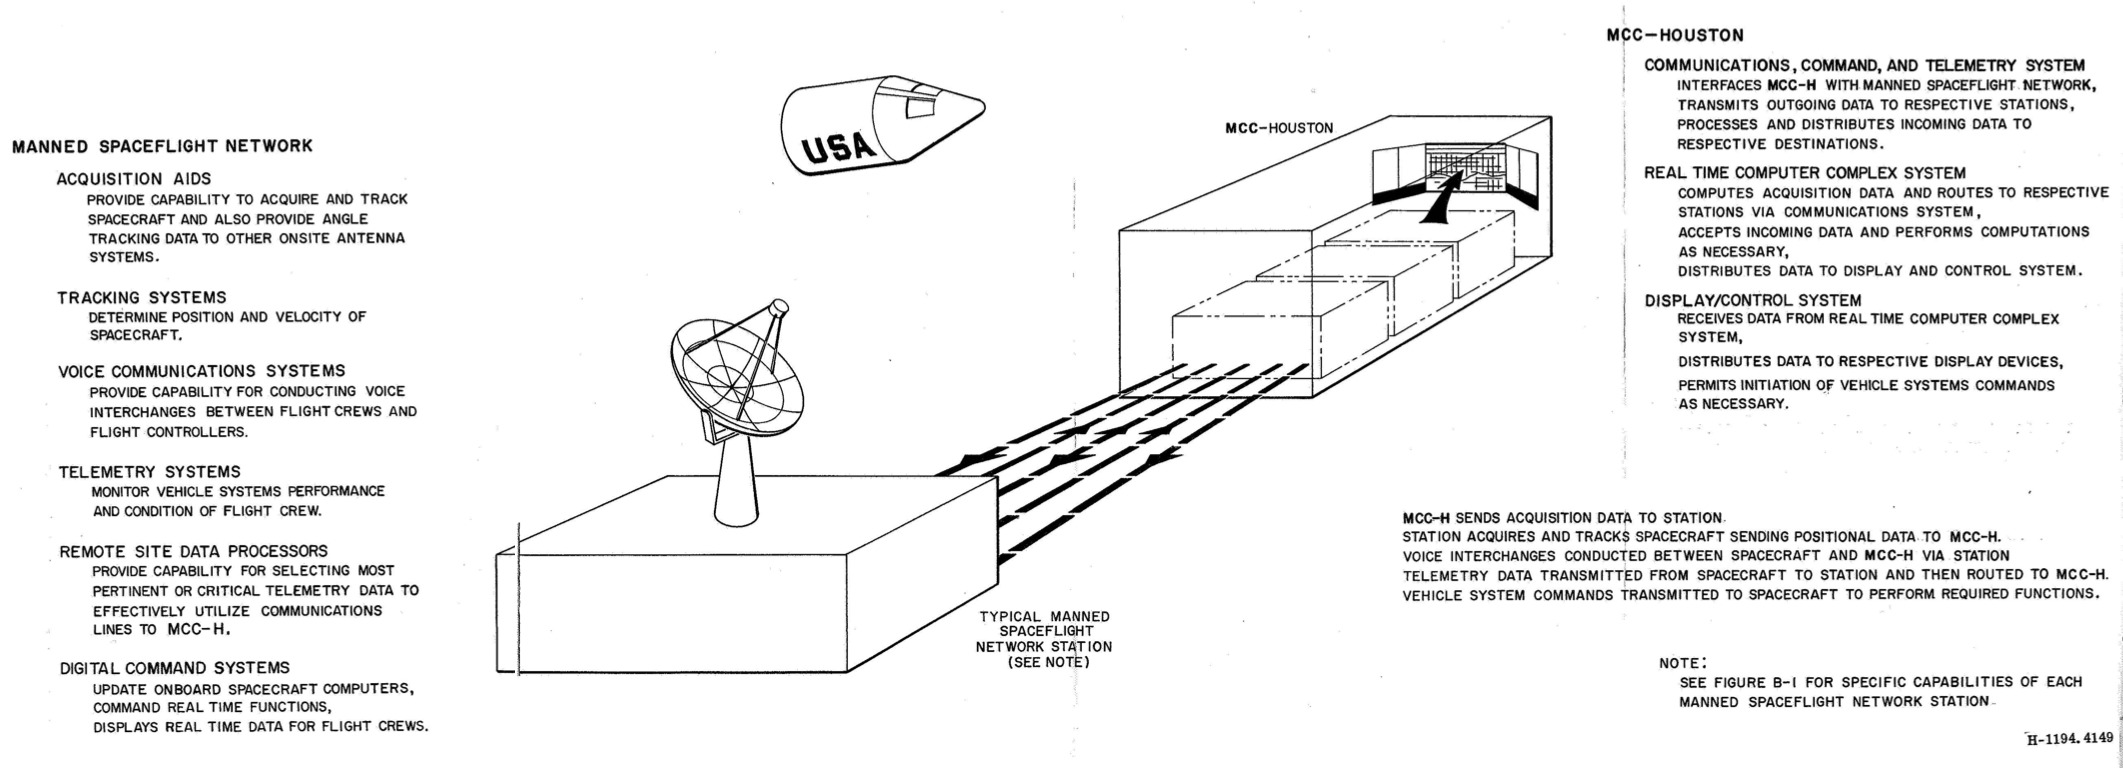 High-level overview of the air-to-ground communications process.